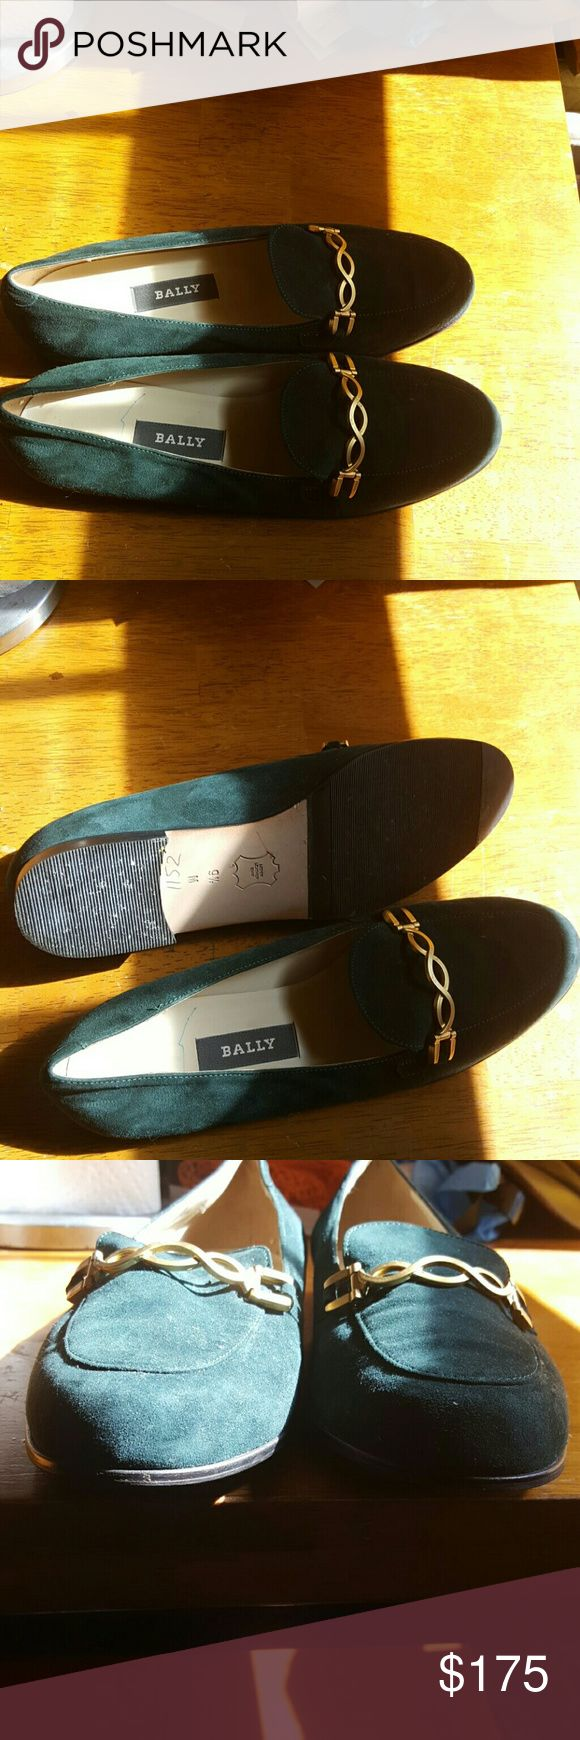 Selling this Bally loafers in my Poshmark closet! My username is: fludrey. #shopmycloset #poshmark #fashion #shopping #style #forsale #Bally  #Shoes